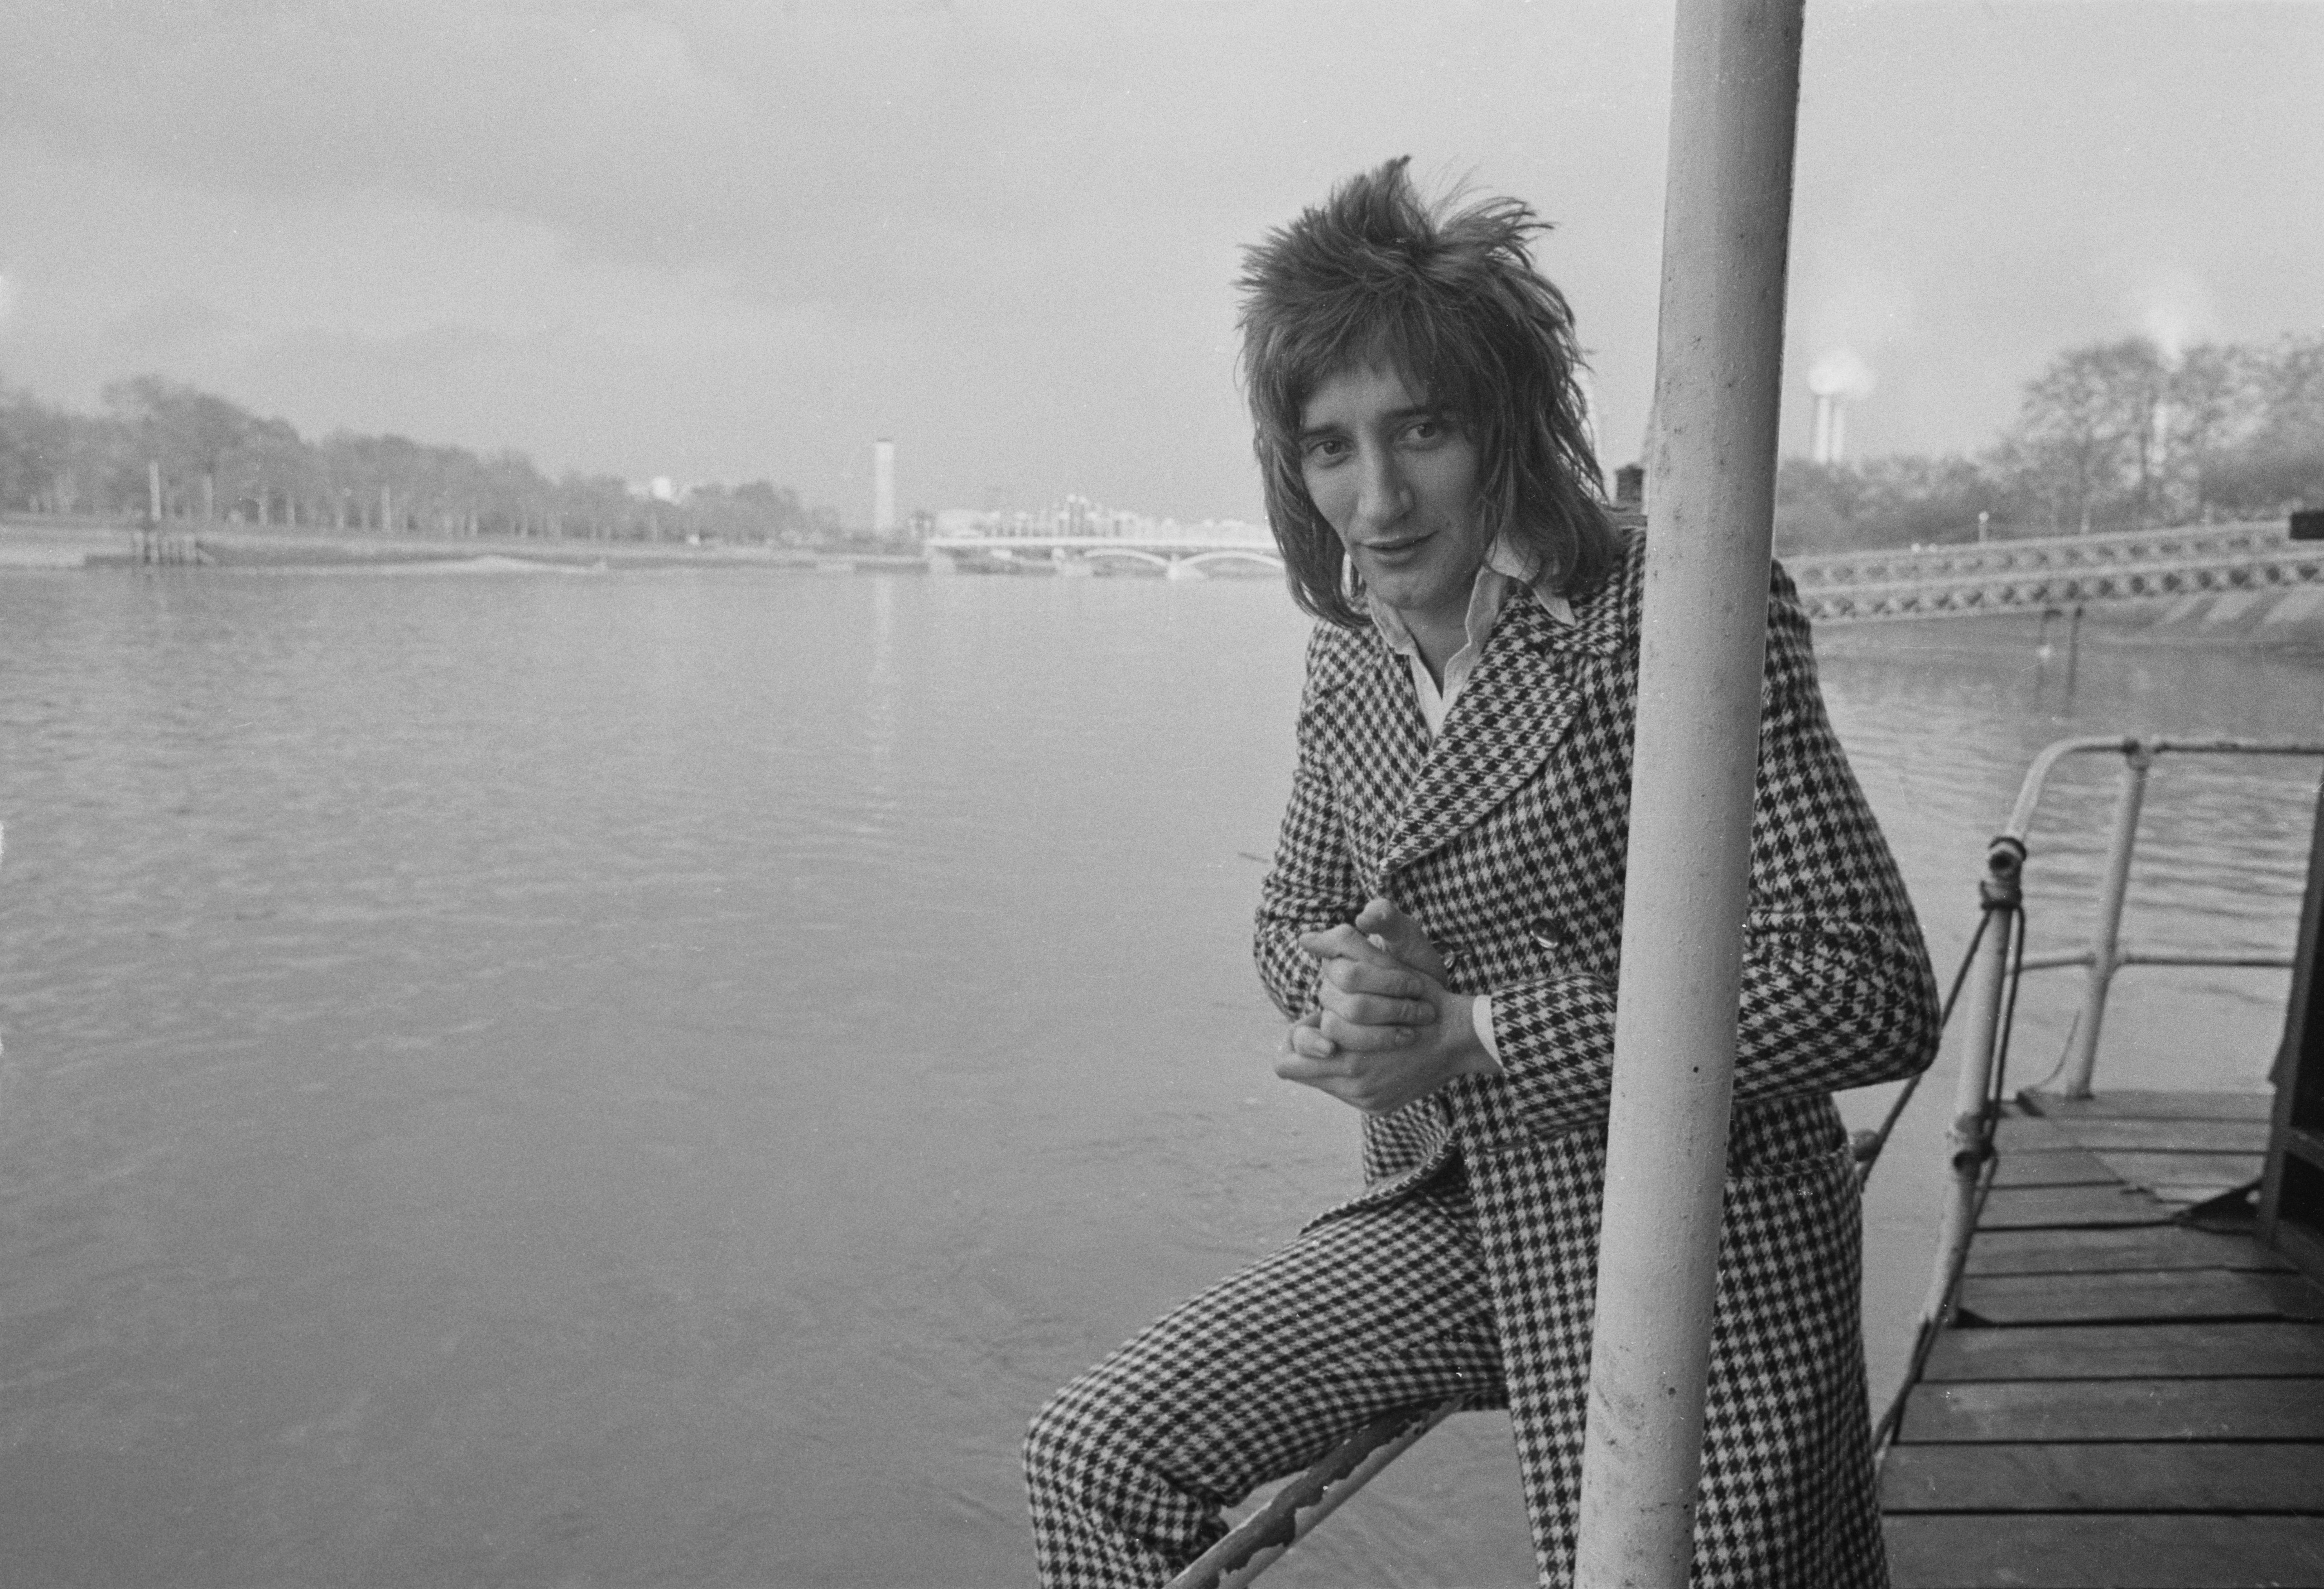 British rock singer and songwriter Rod Stewart awarded by 'Disc' magazine 'Top International Vocalist', London, UK, 15th February 1973. (Photo by Jack Kay/Daily Express/Hulton Archive/Getty Images)